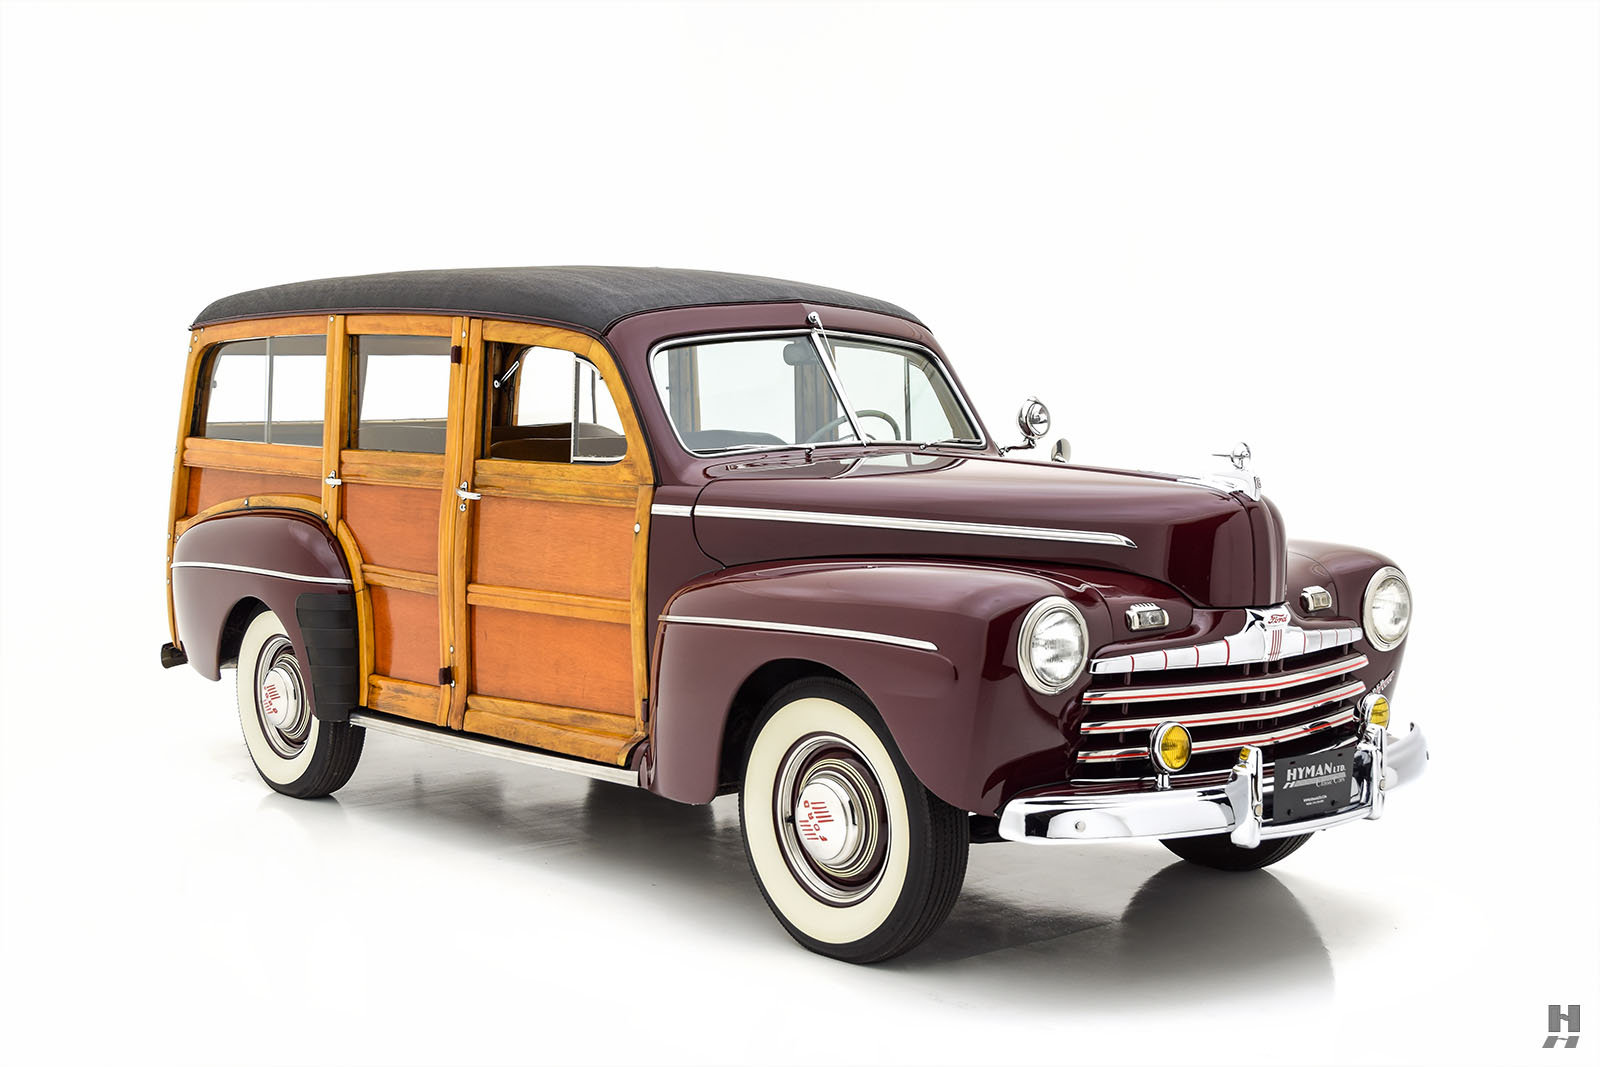 1946 FORD SUPER DELUXE STATION WAGON For Sale (picture 2 of 6)